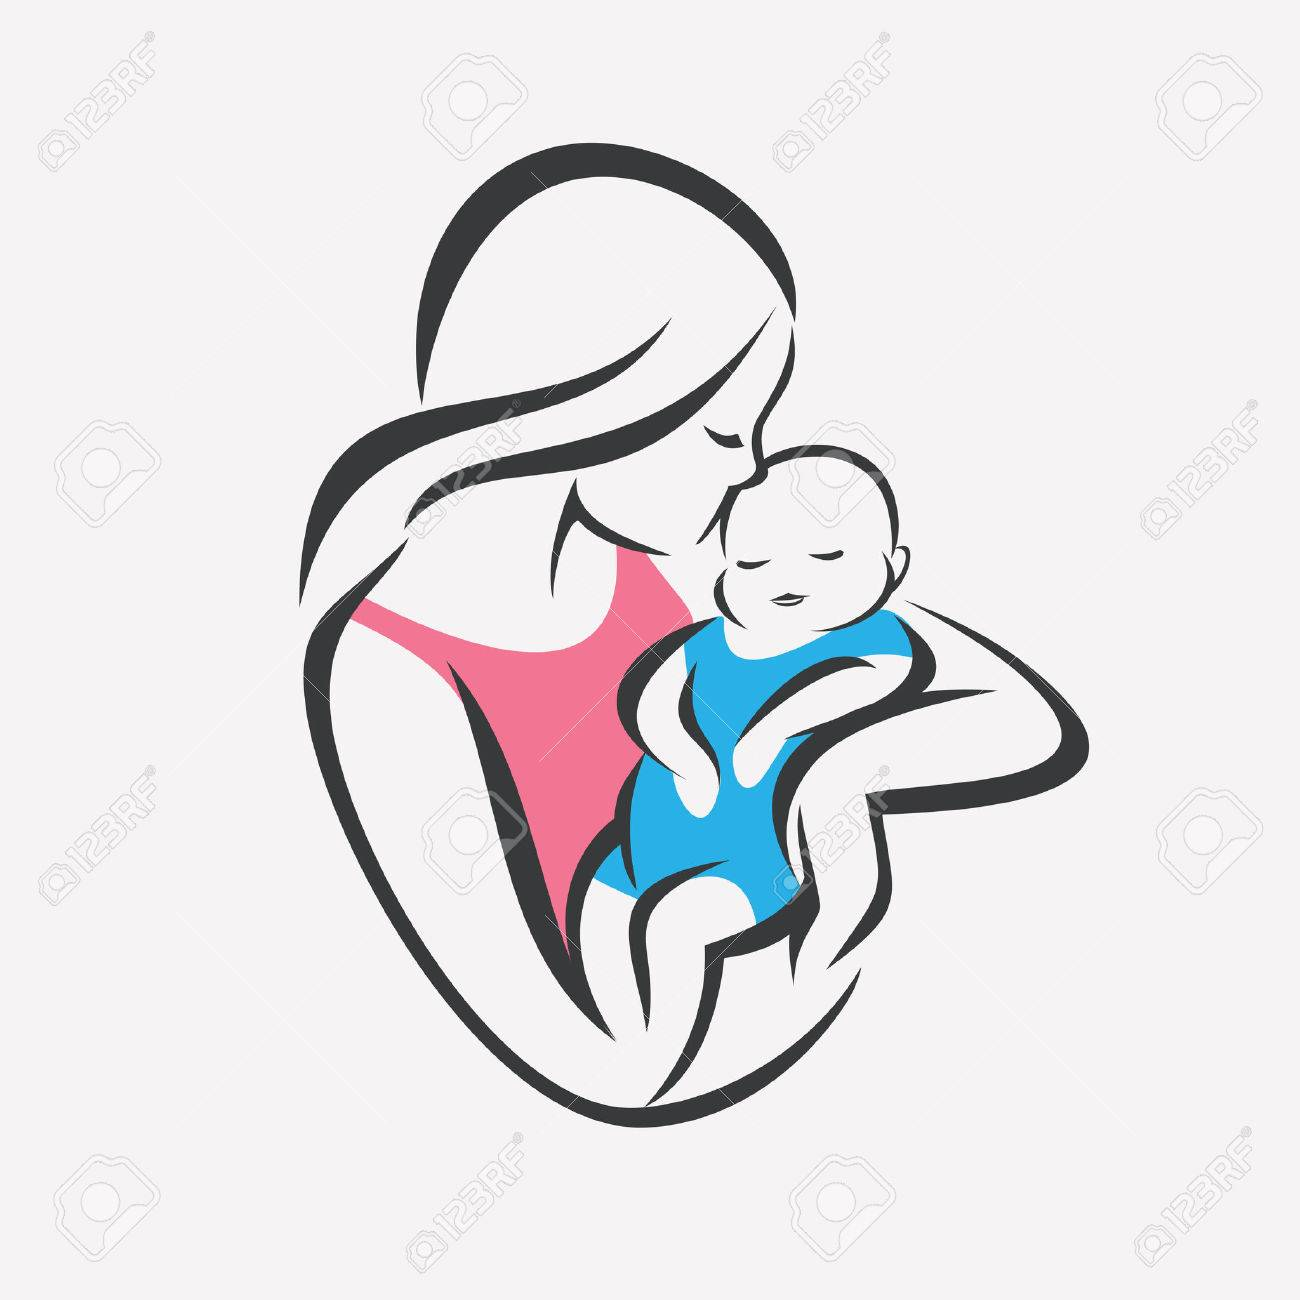 mother and baby stylized vector symbol mom kiss her child logo rh 123rf com